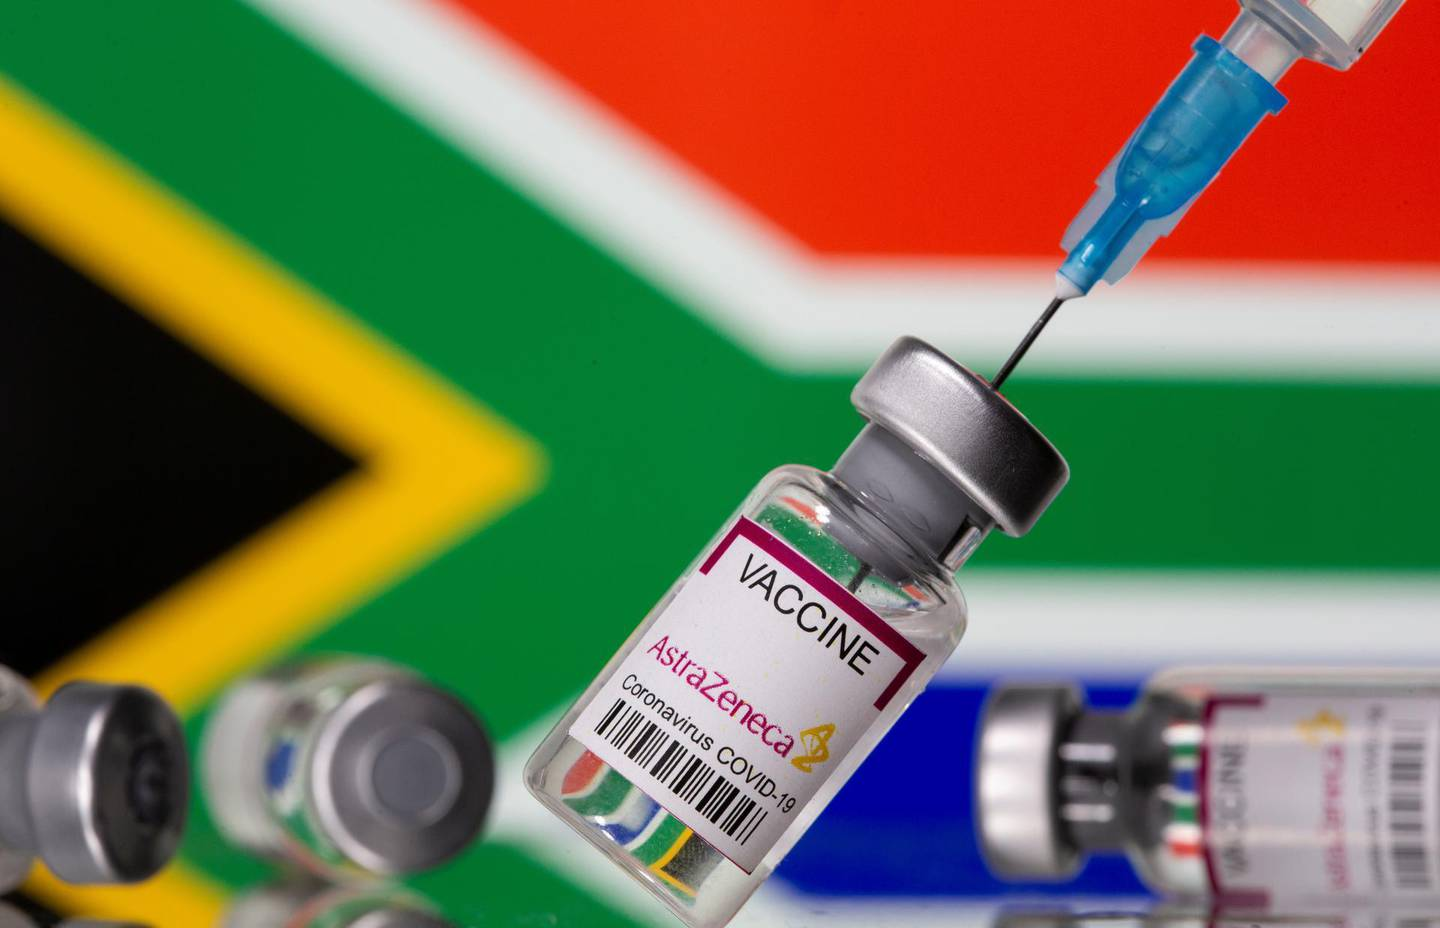 """Vials labelled """"Astra Zeneca COVID-19 Coronavirus Vaccine"""" and a syringe are seen in front of a displayed South Africa flag, in this illustration photo taken March 14, 2021. REUTERS/Dado Ruvic/Illustration"""